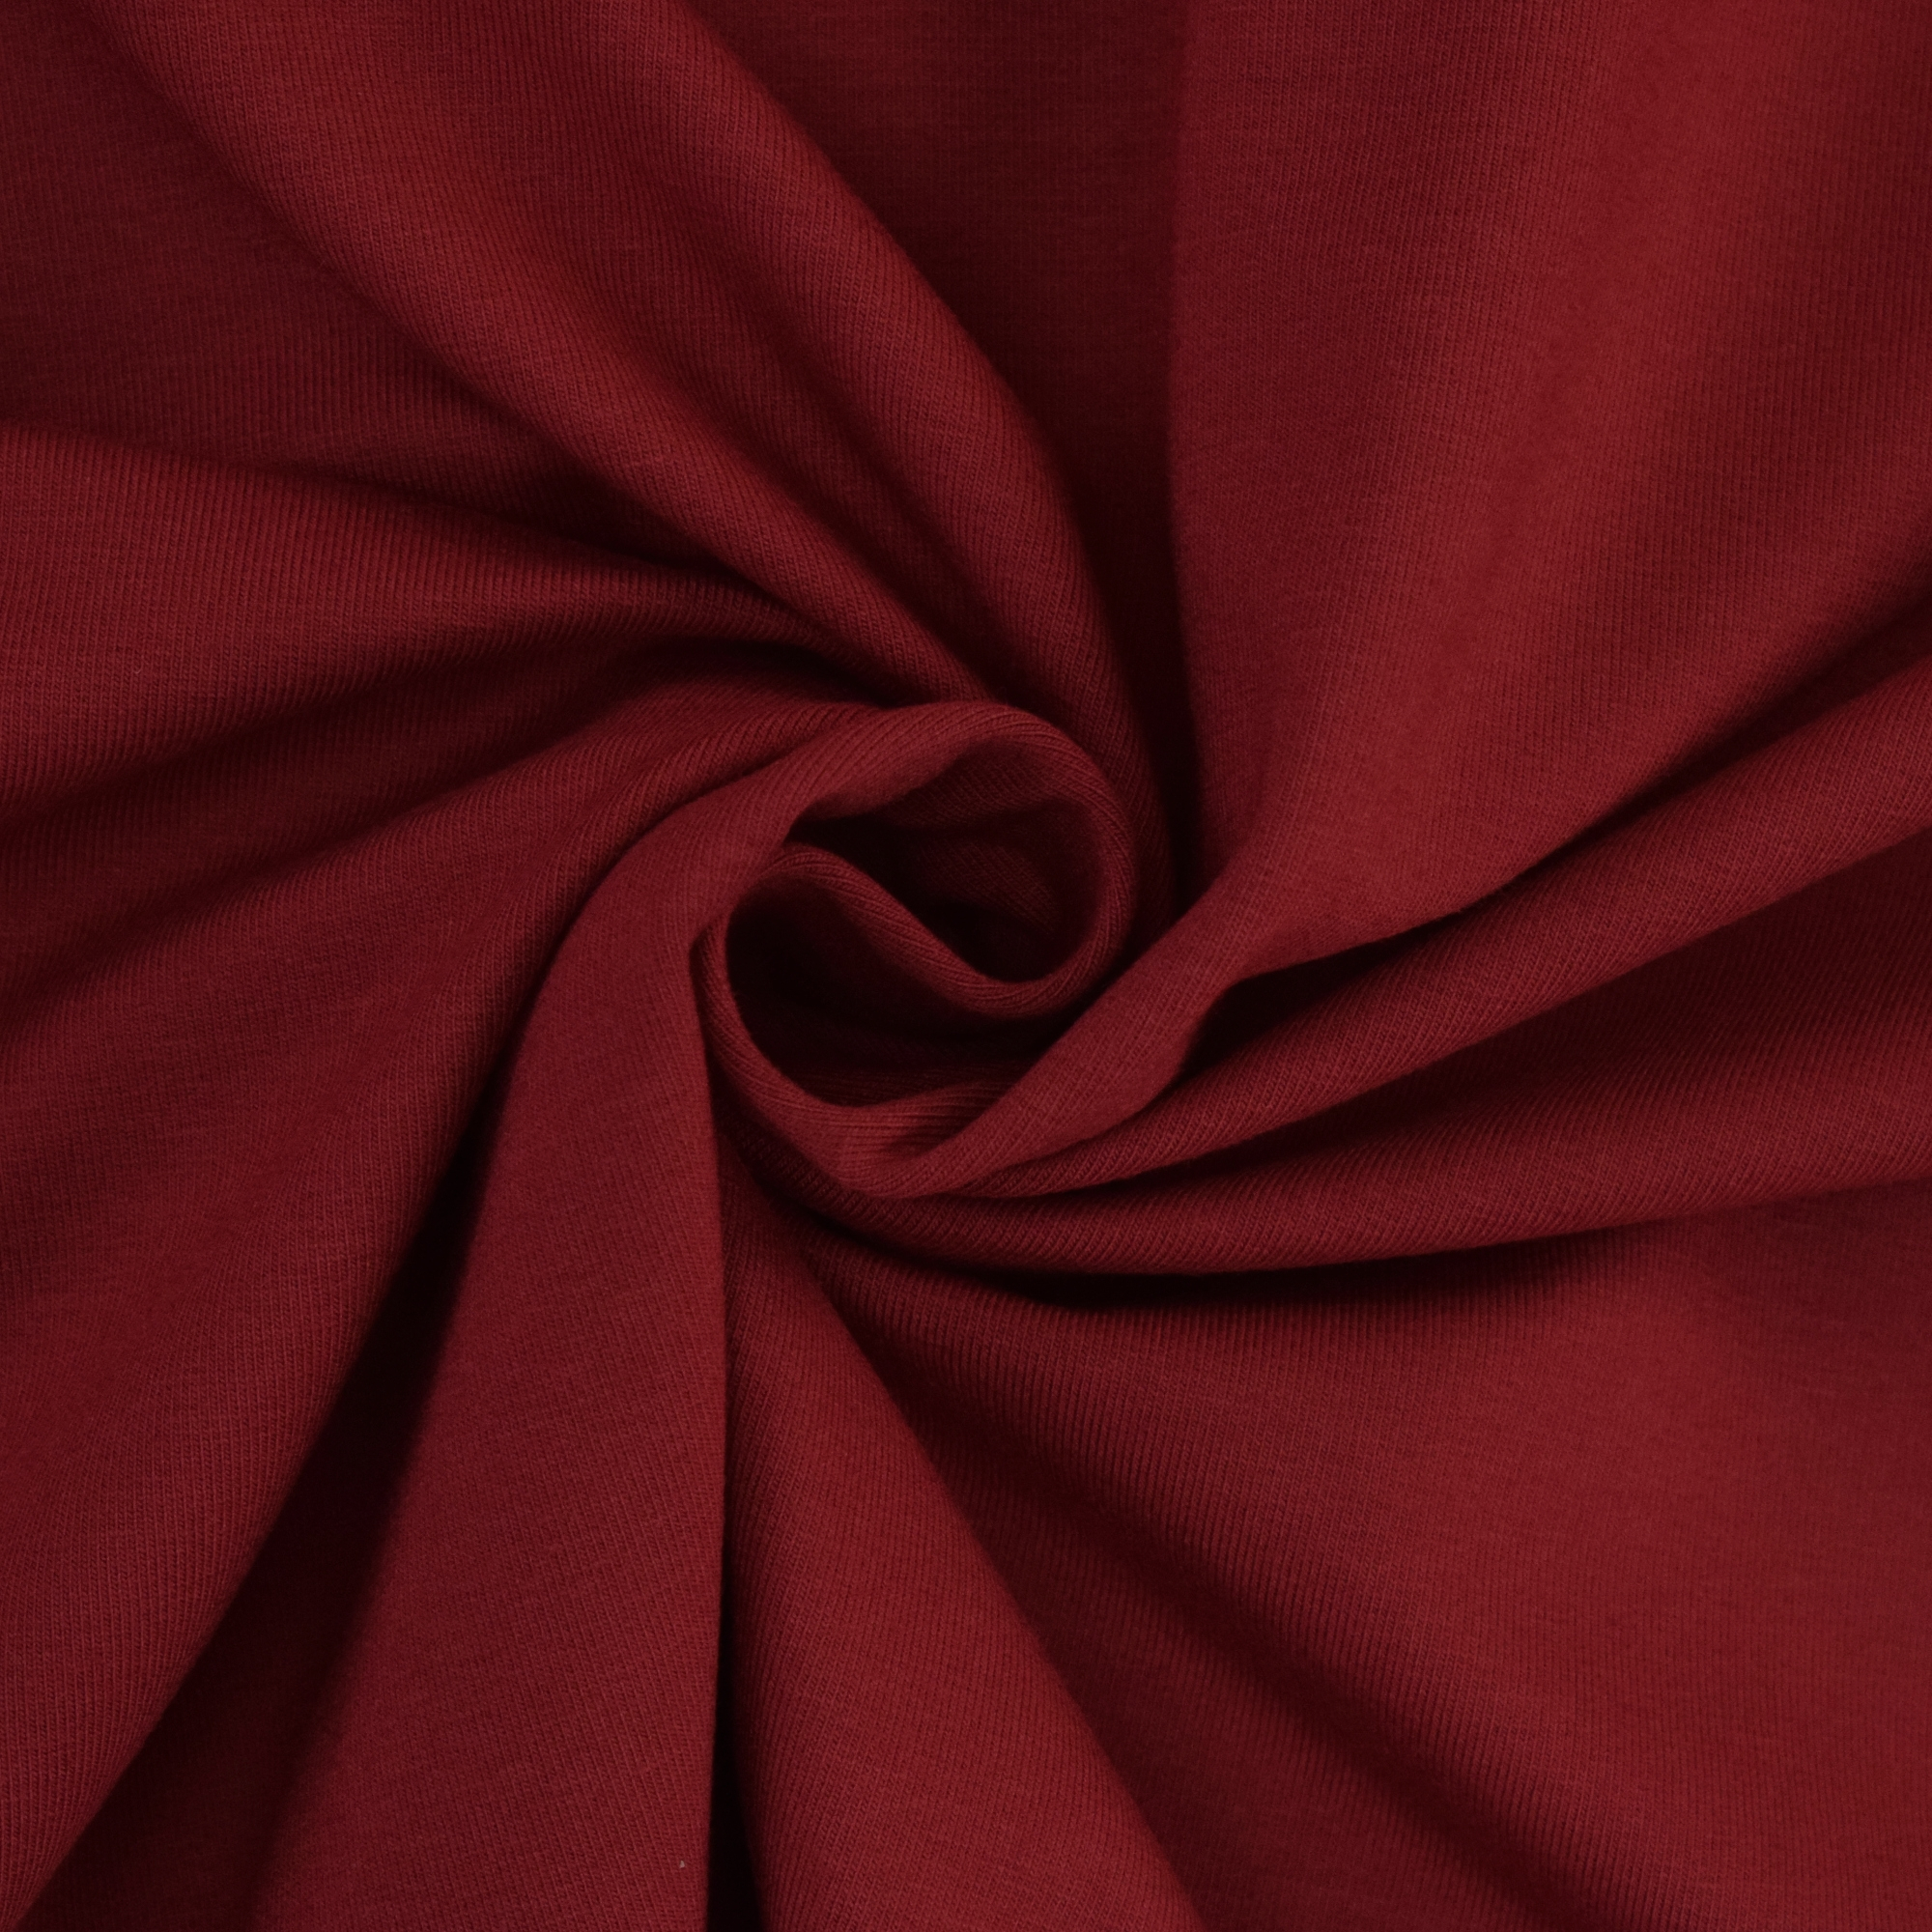 Cotton jersey plain, claret-red | 455.421-0205 | rot